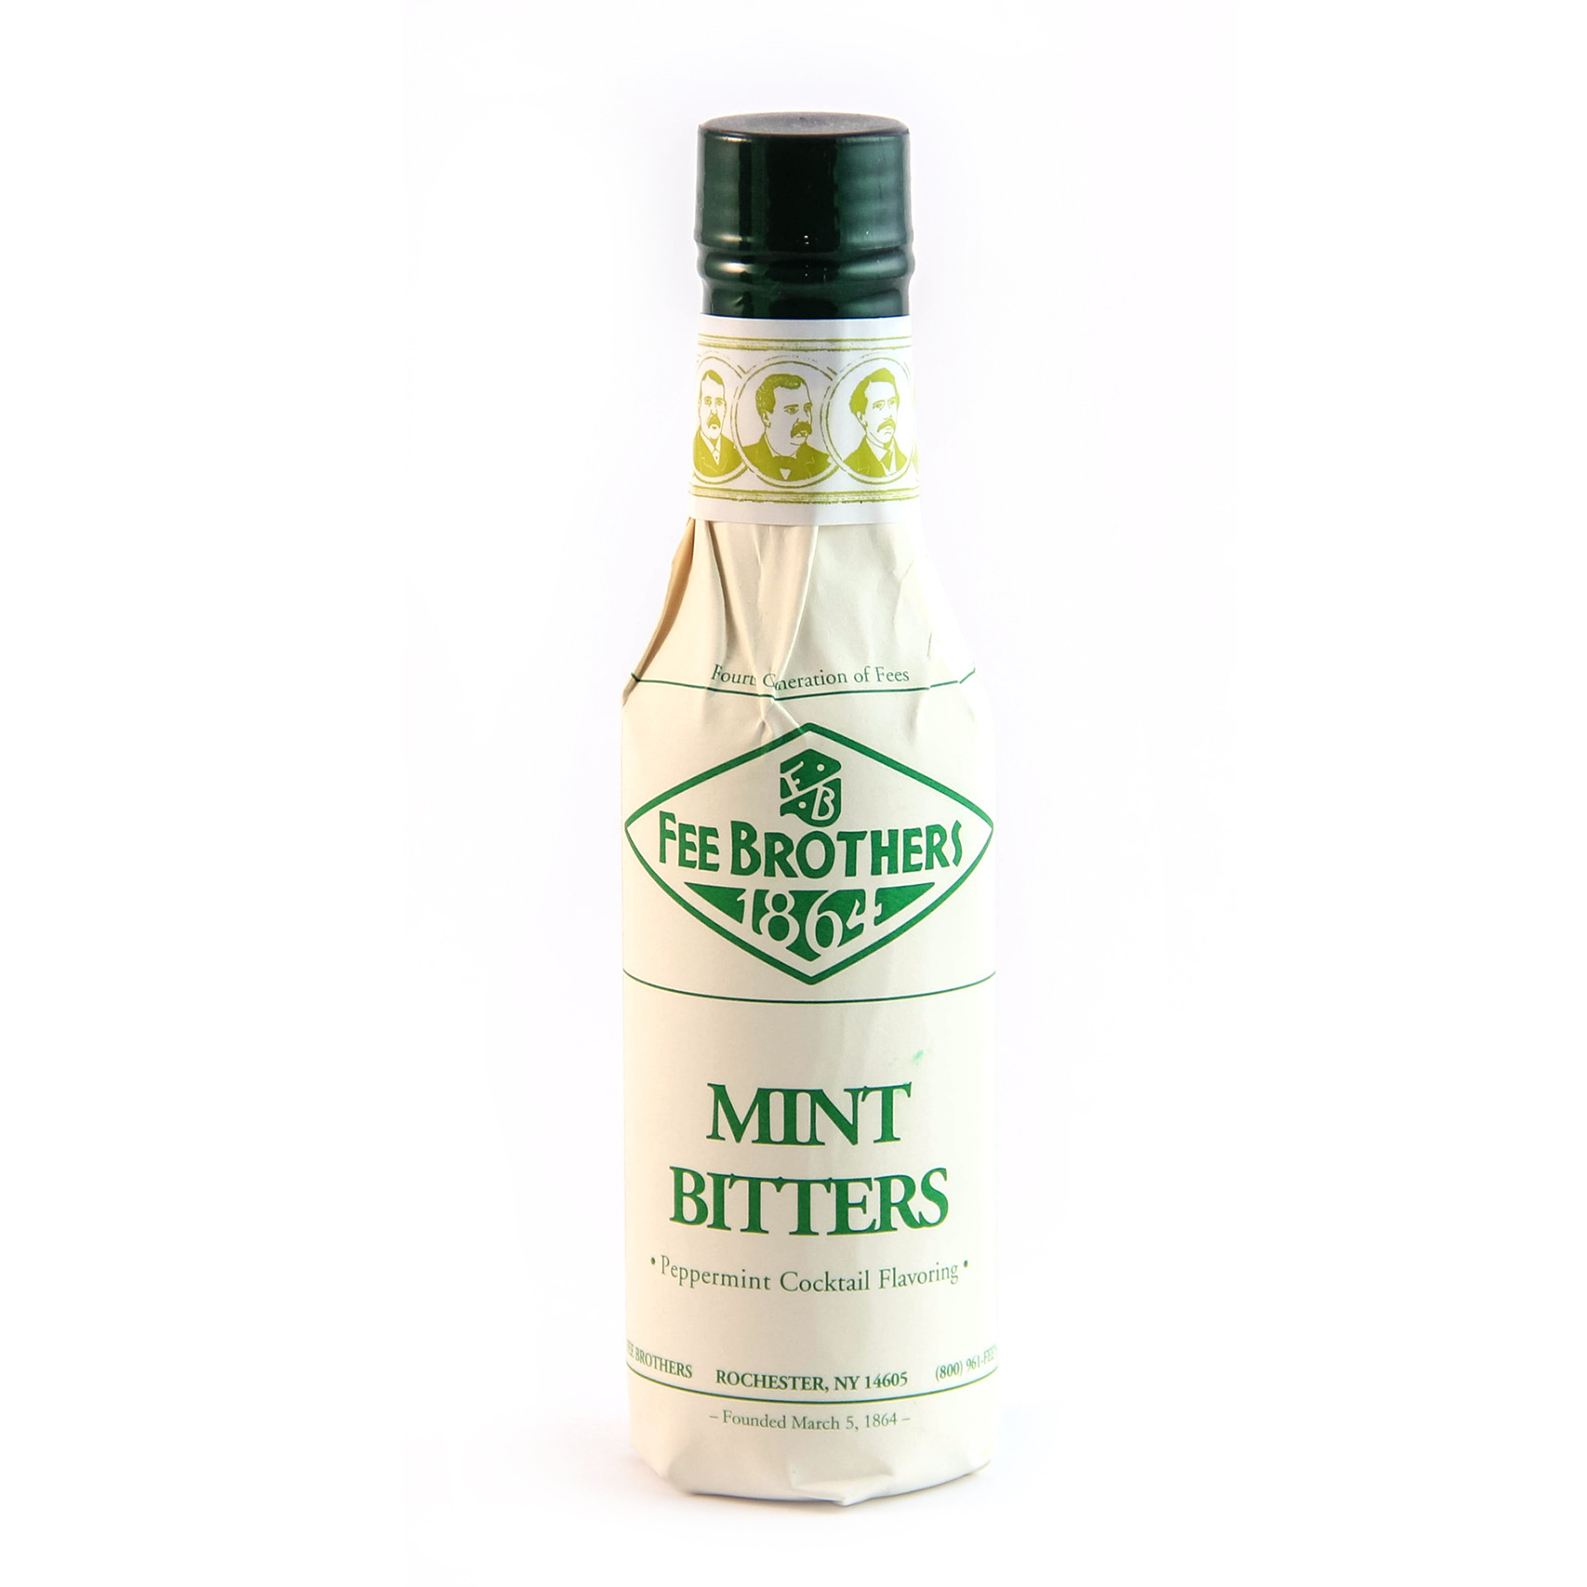 Fee Brothers 1864 Mint Bitters - Bitter Aromatico - 15cl - Fee Brothers